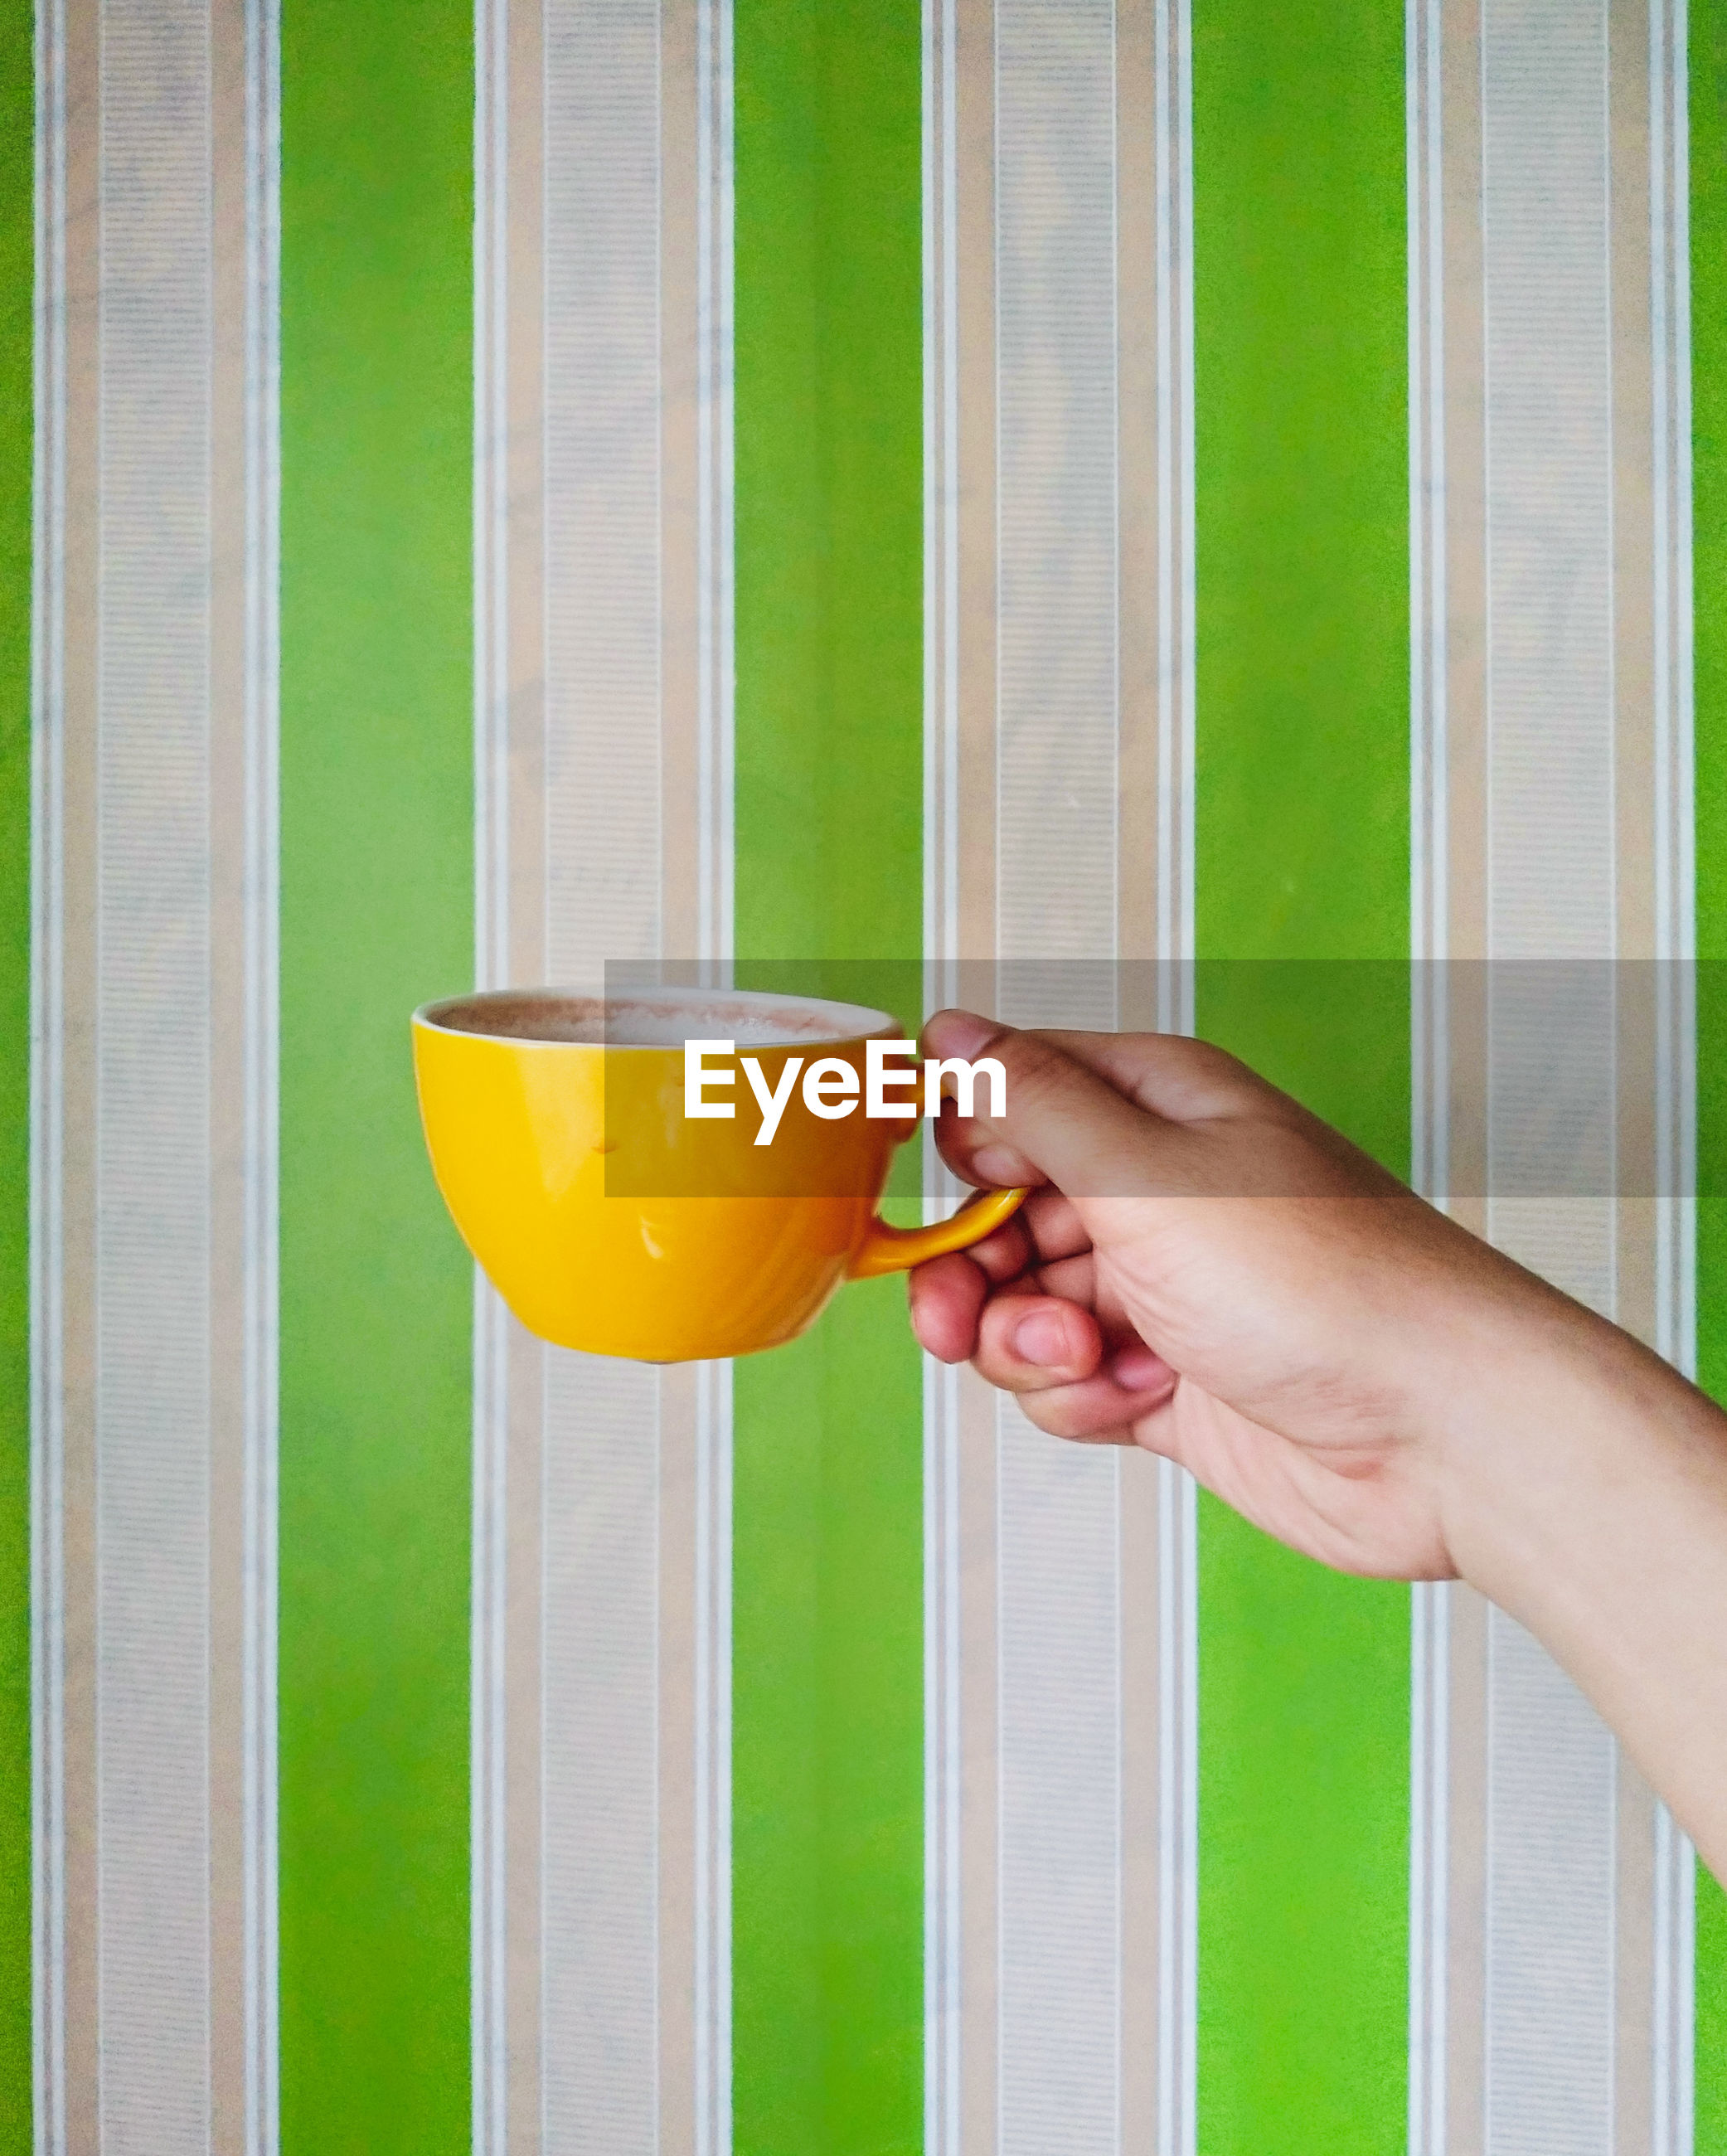 Cropped image of hand holding coffee cup on window